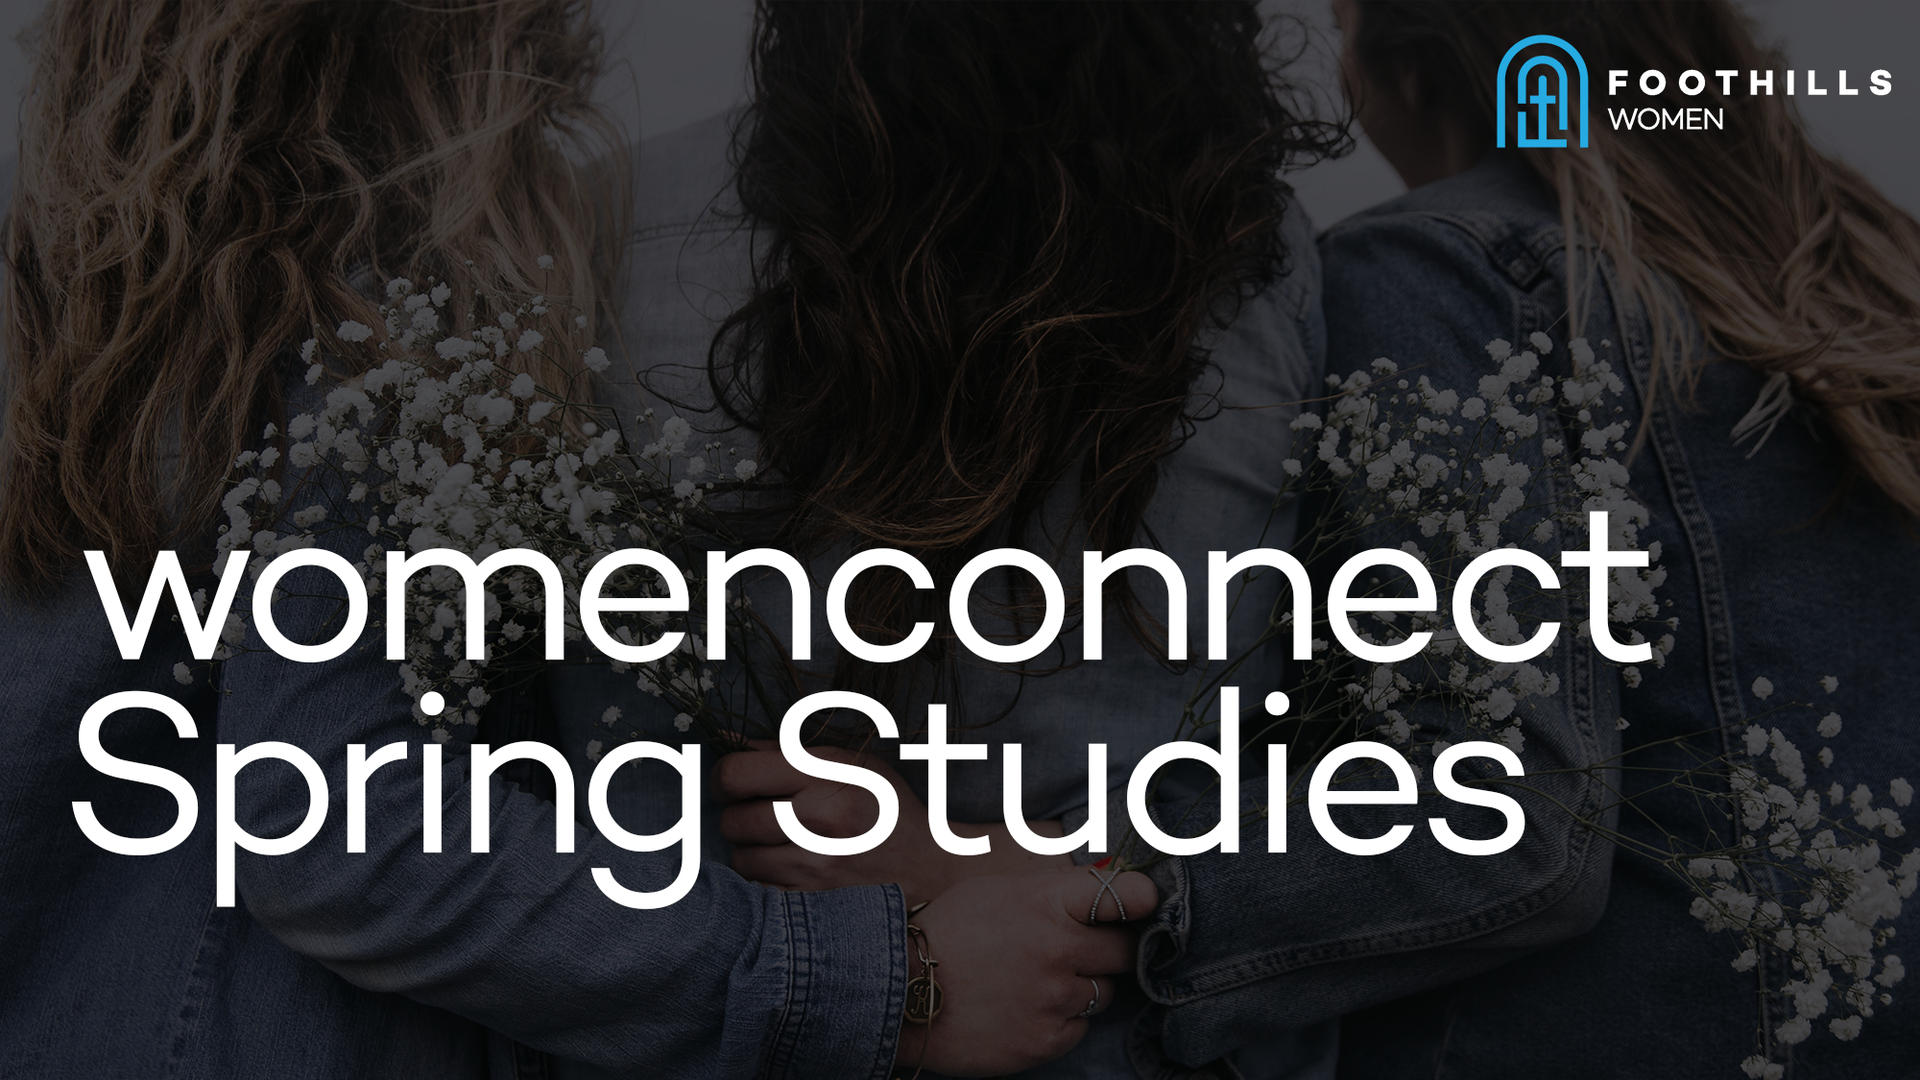 womenconnect: Spring Studies